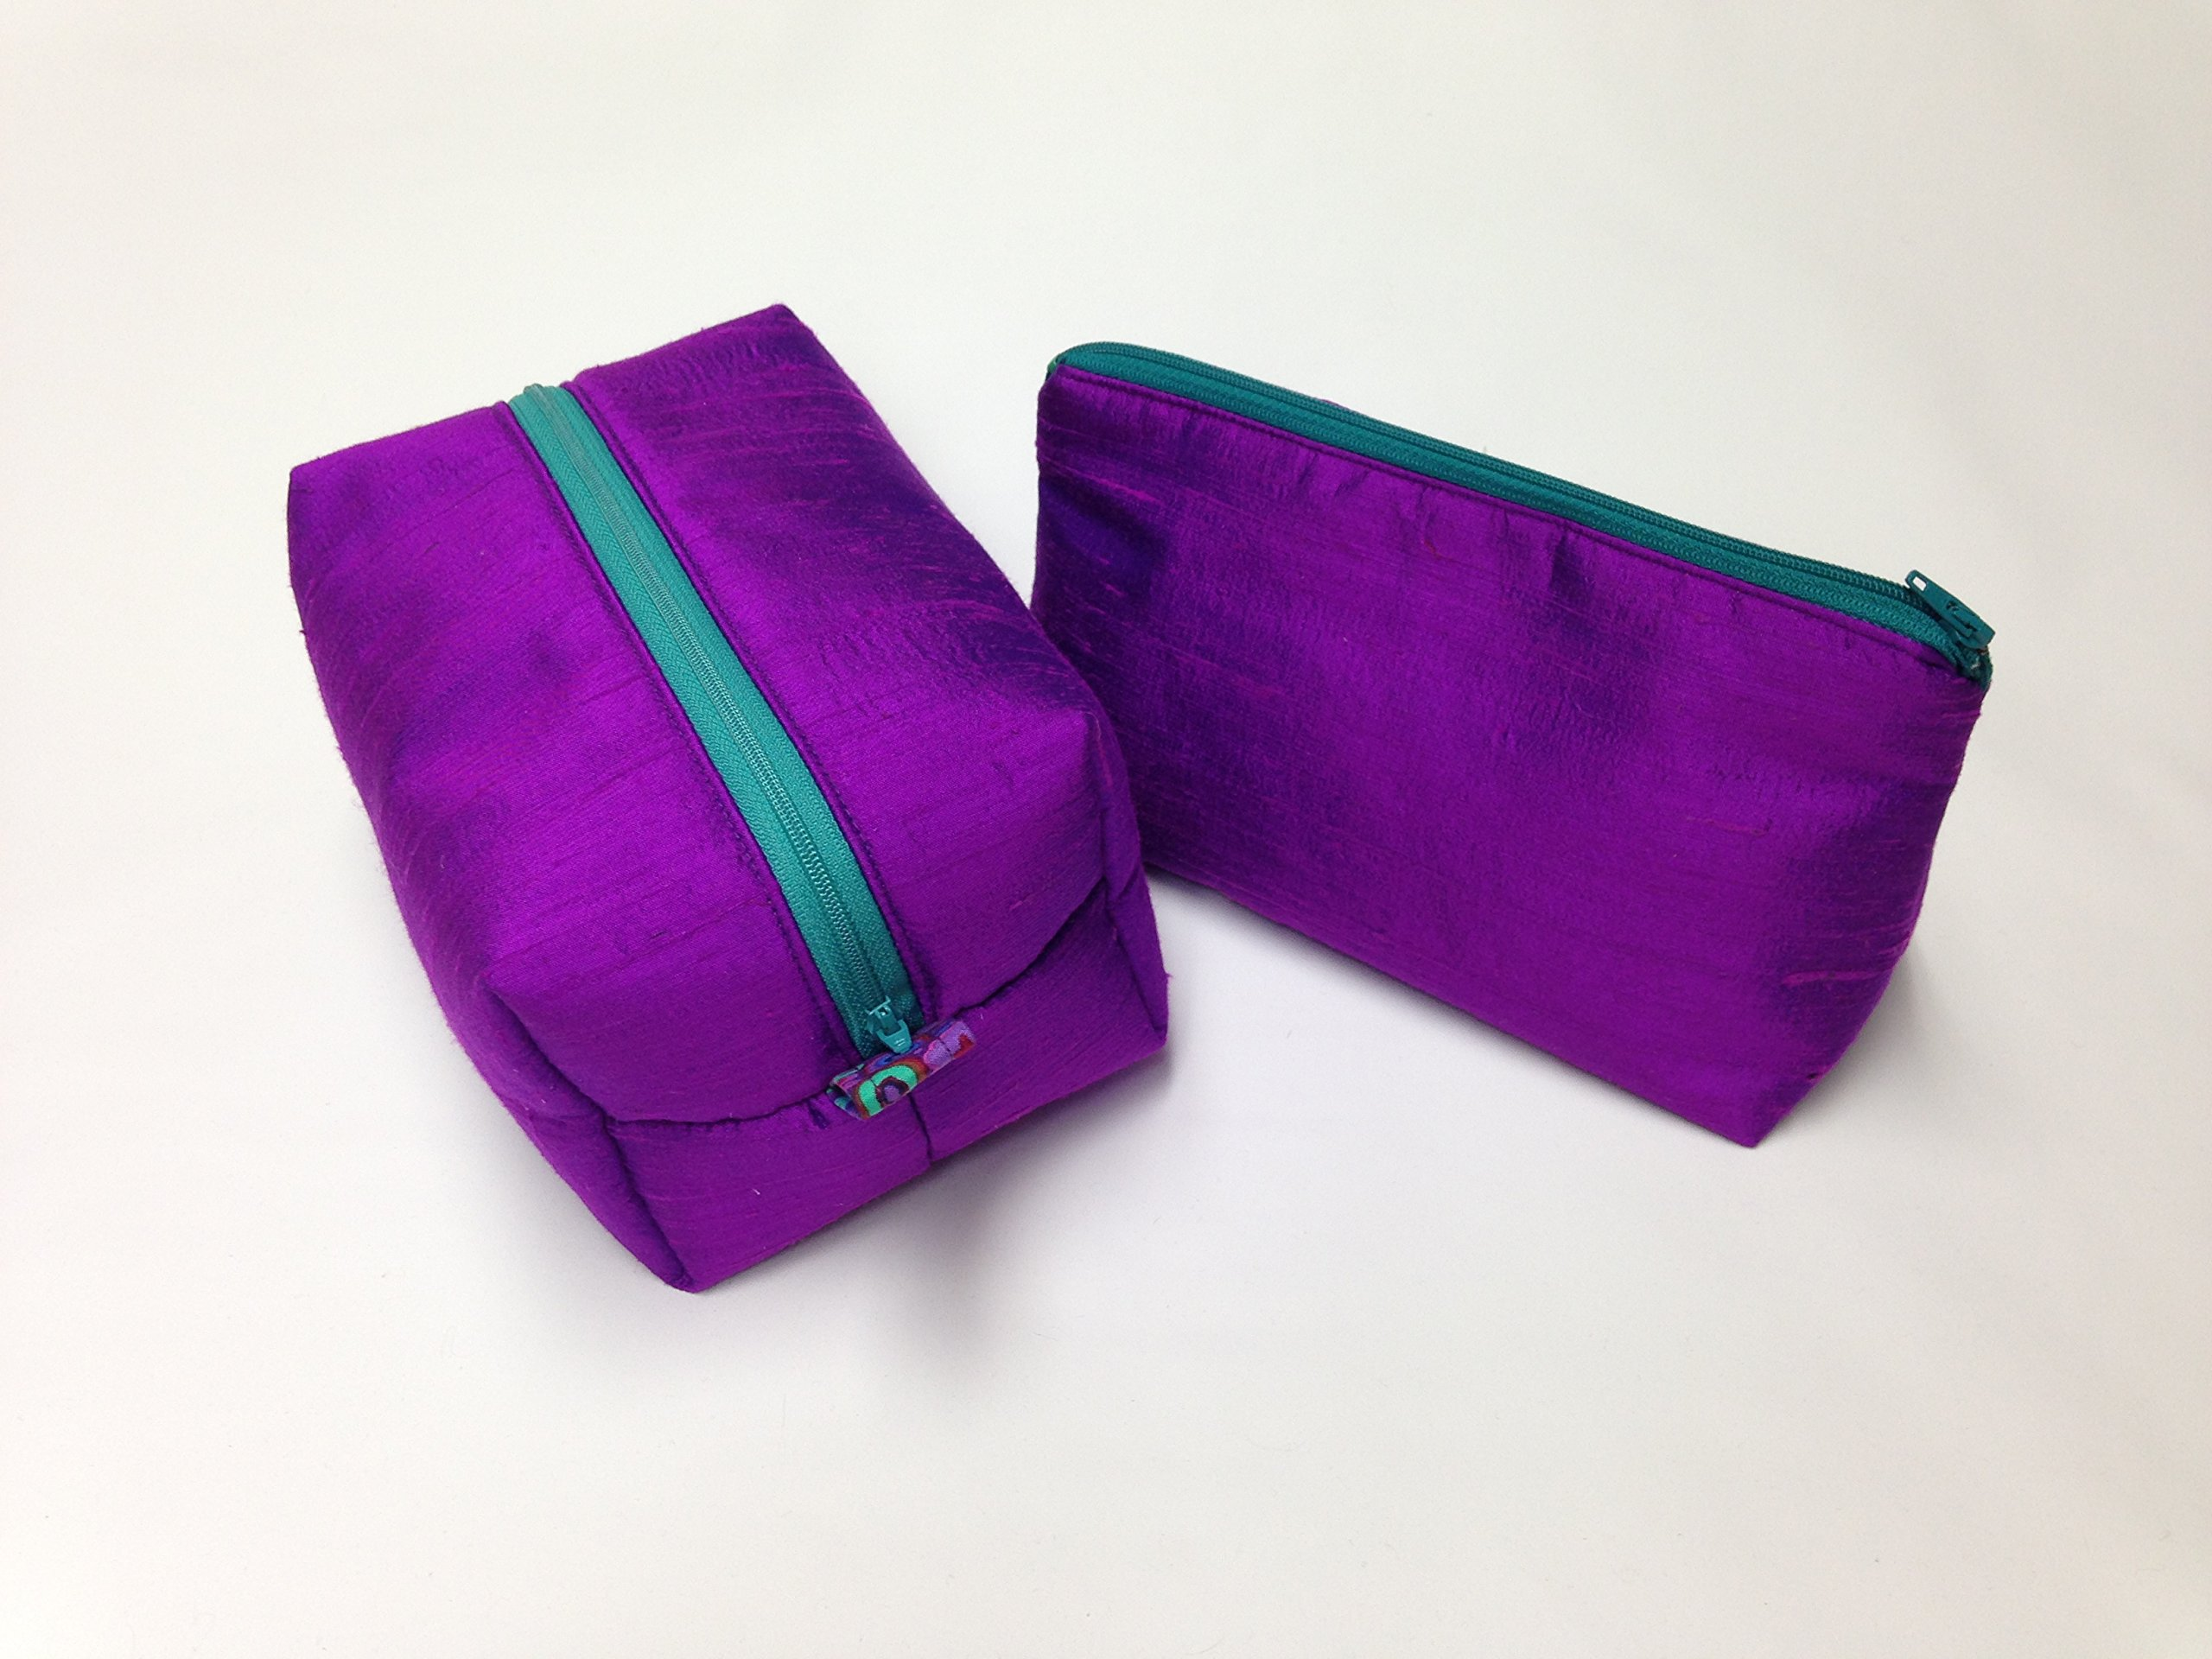 Purple Silk Toiletry/Makeup Bag Set